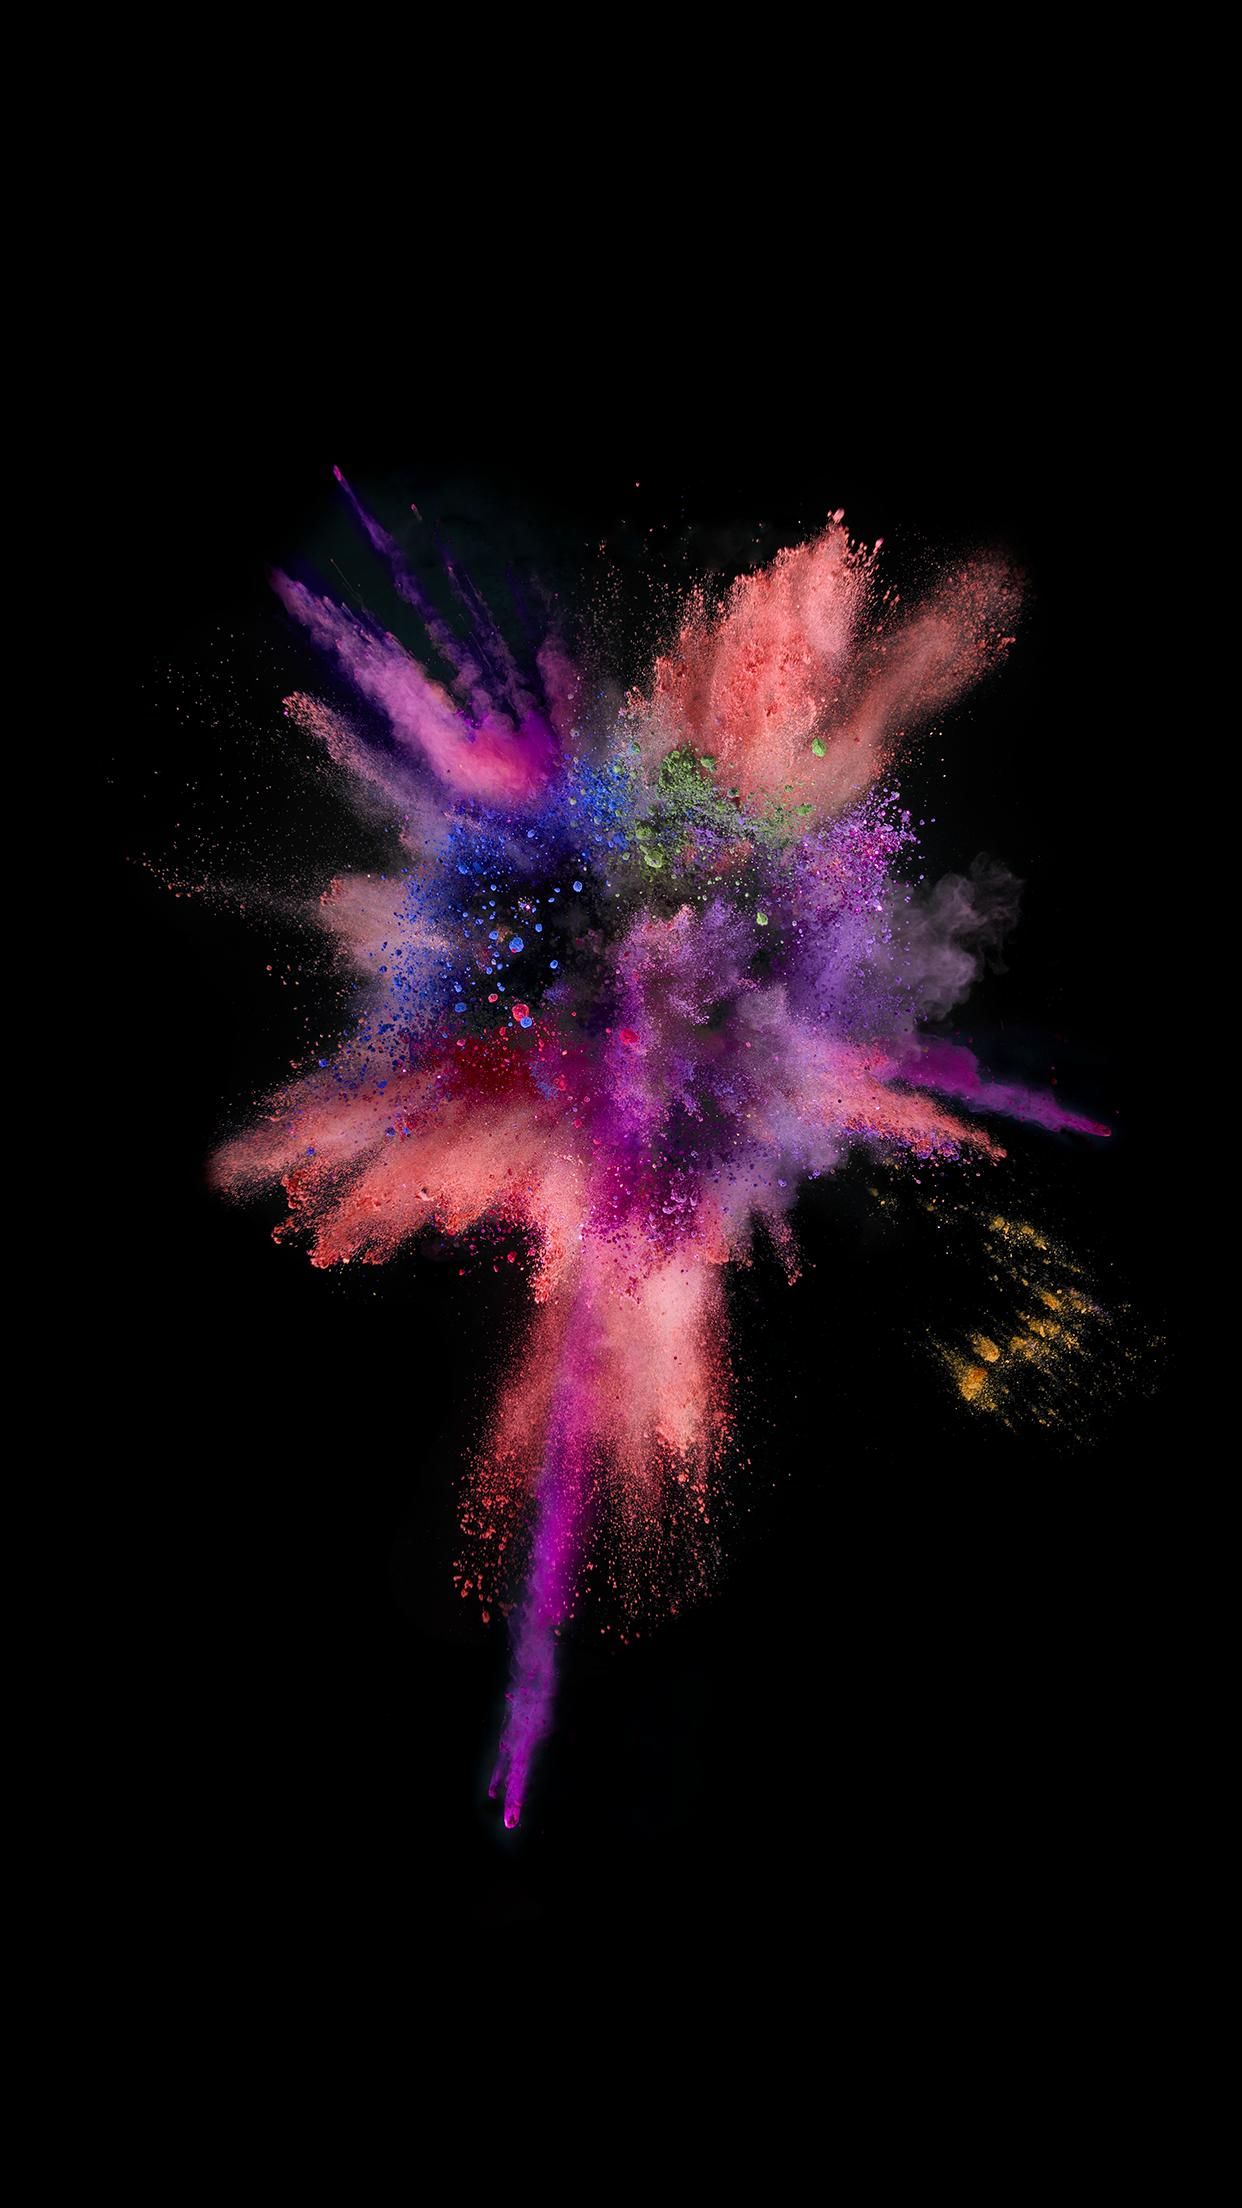 Ios9 Colour Explosion Wallpapers 1080x1920 Need Iphone 6s Plus Wallpaper Background For Iphone Iphone 6s Wallpaper Iphone 7 Wallpapers Apple Wallpaper